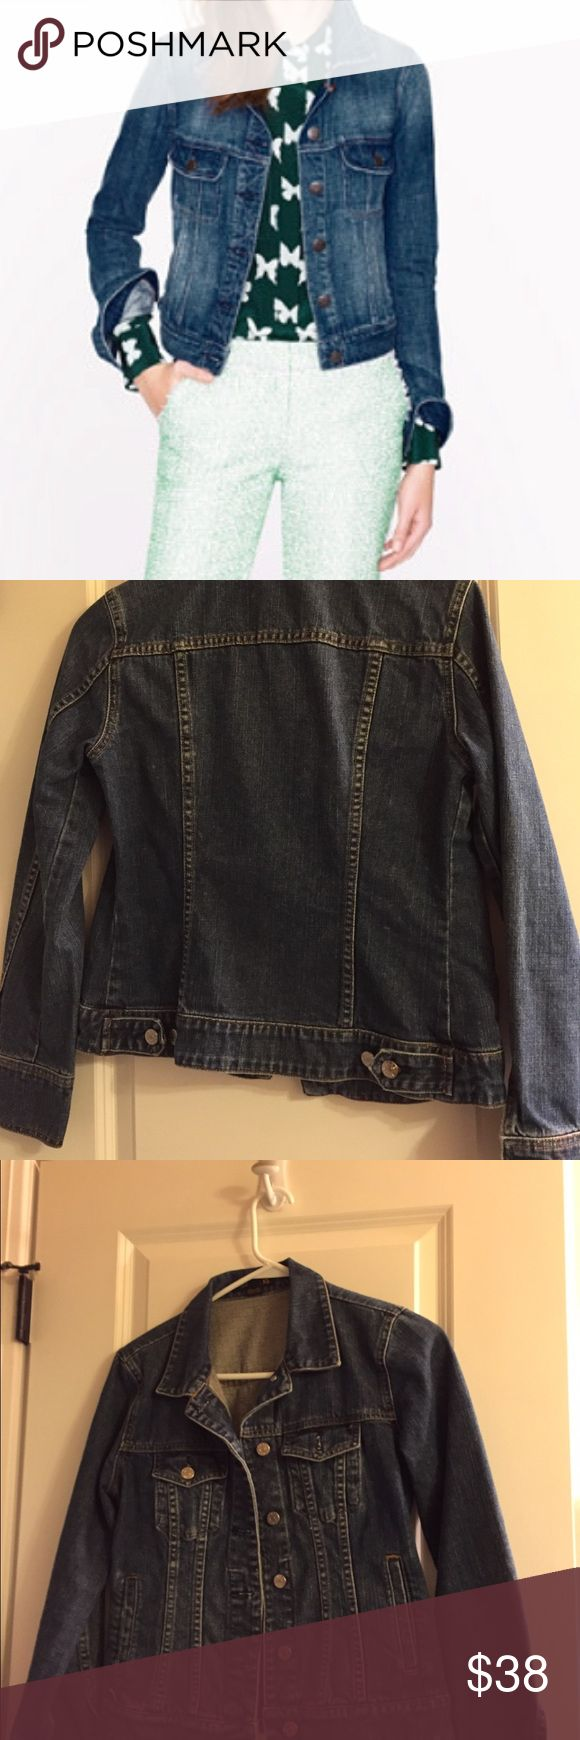 J crew jean jacket Size extra small Boxee J.Crew Jean jacket. J. Crew Jackets & Coats Jean Jackets